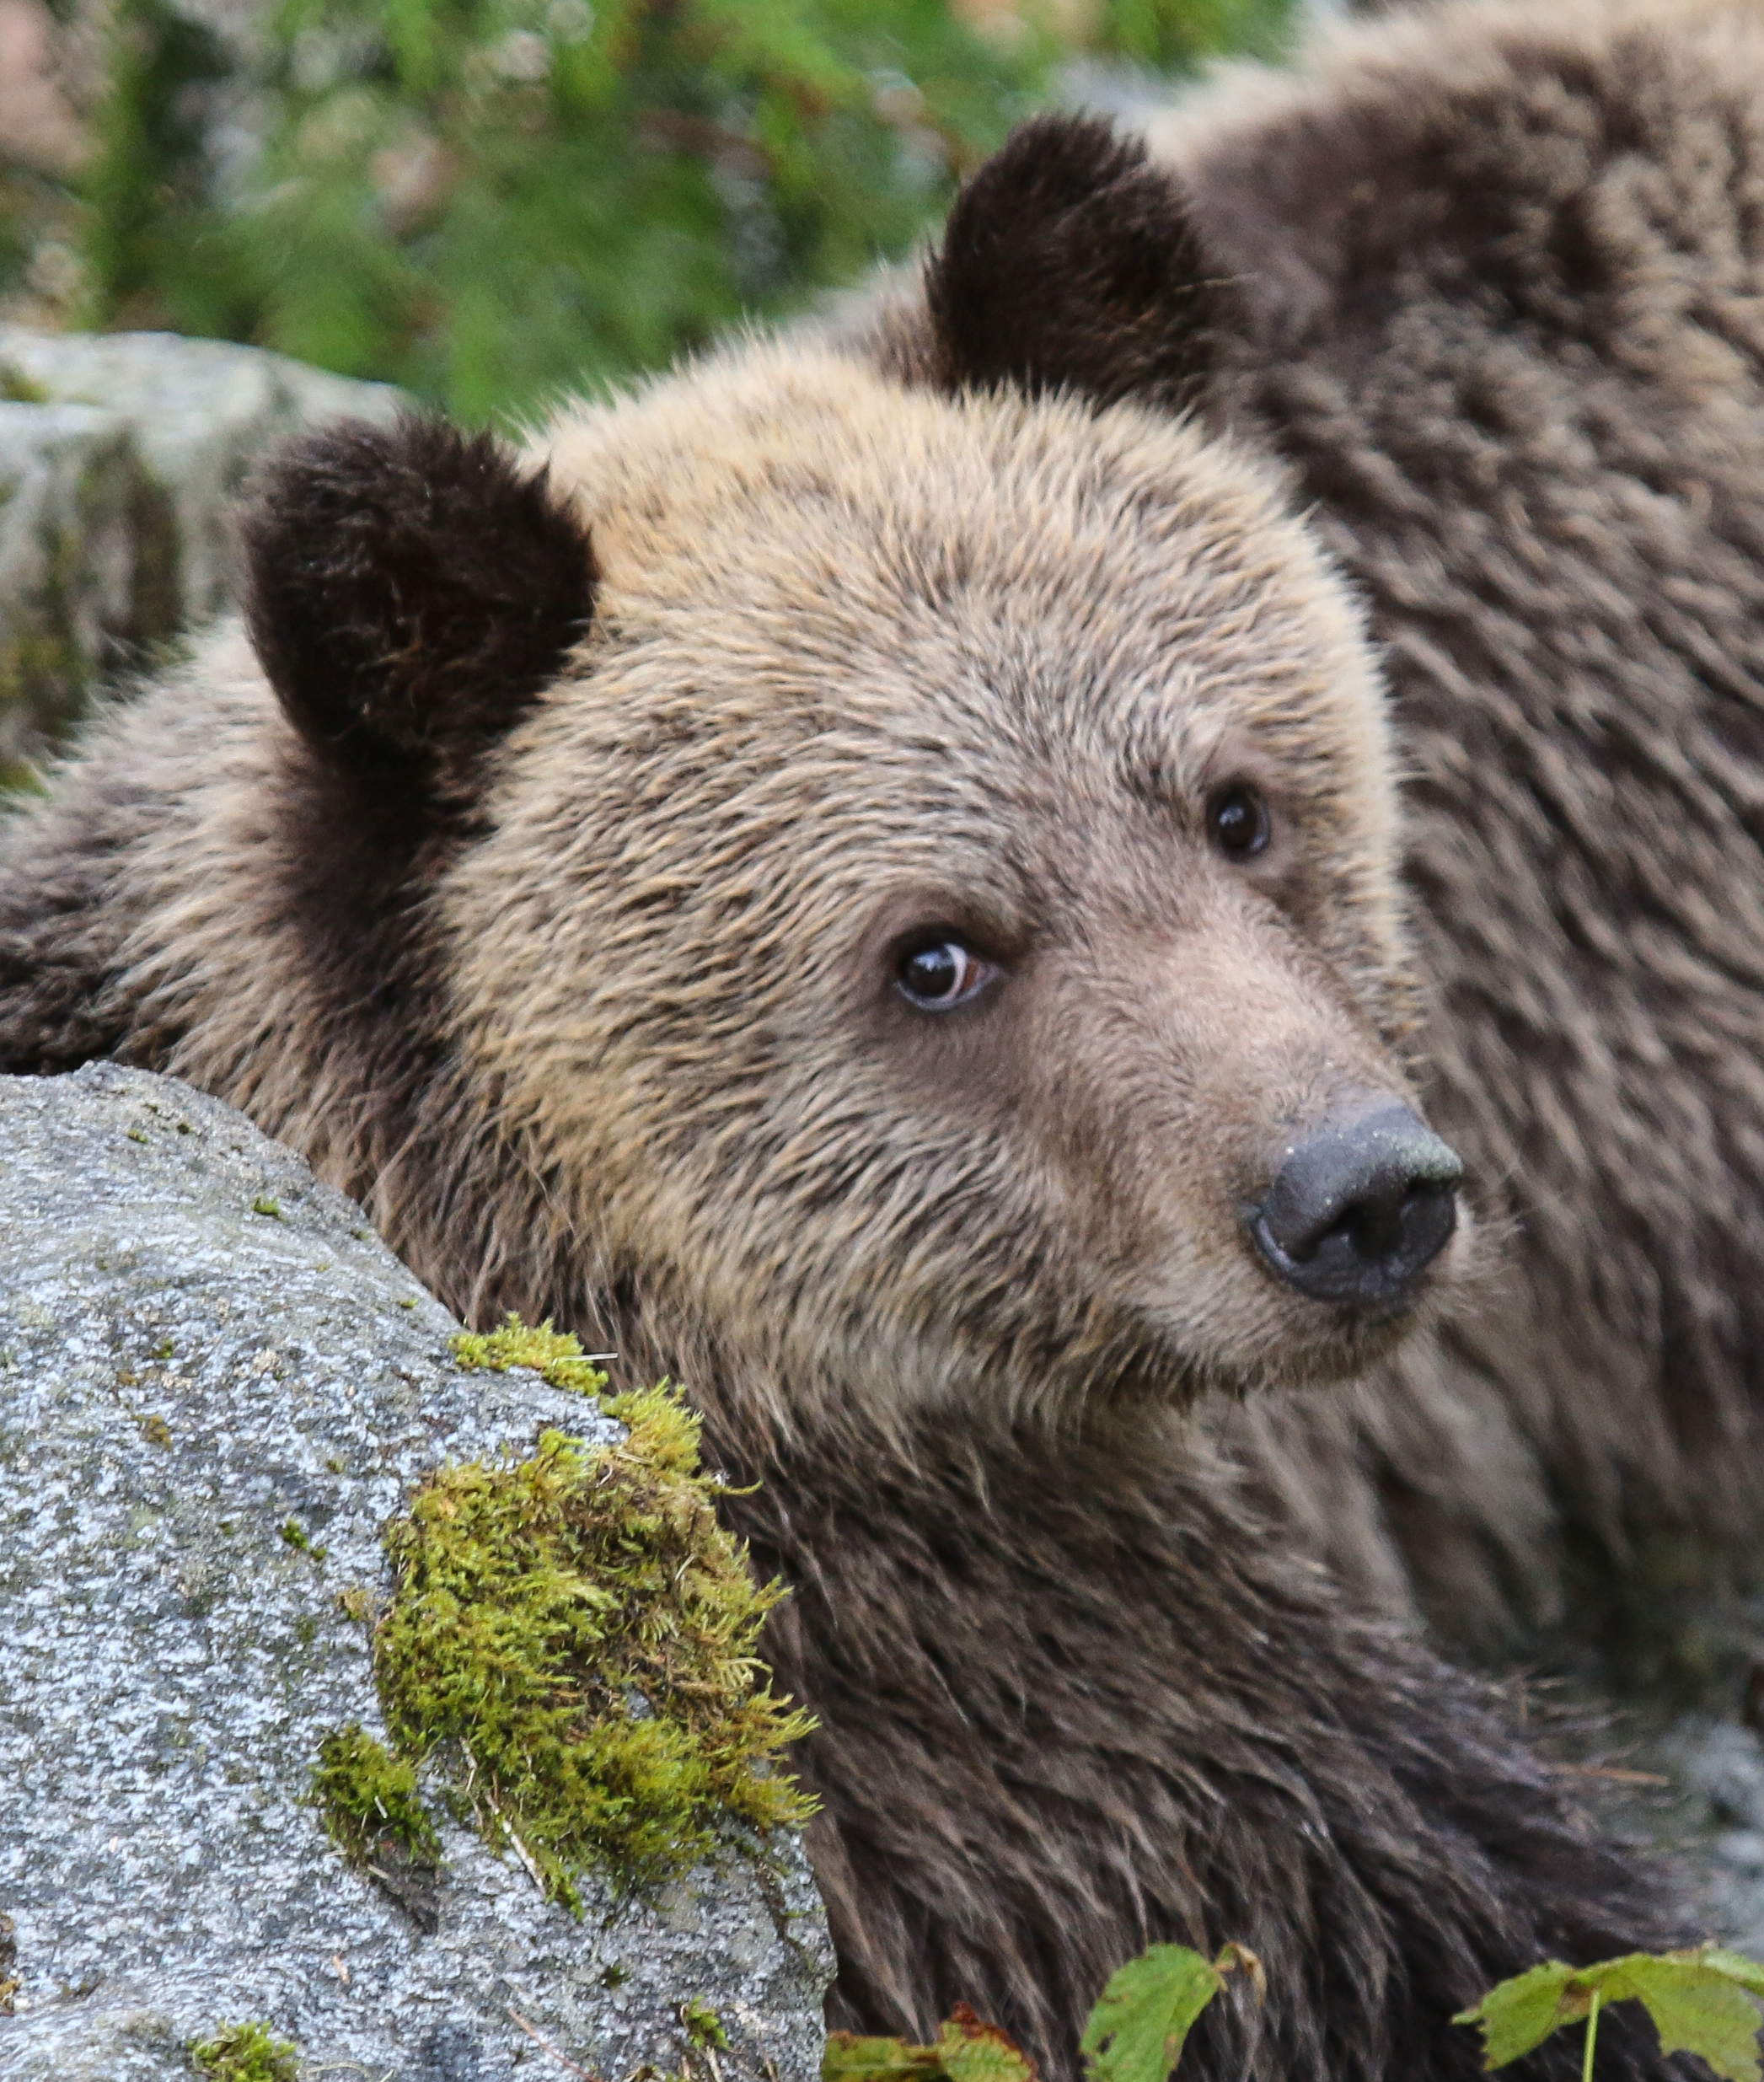 135368 download wallpaper Animals, Bear, Muzzle, Nice, Sweetheart, Brown screensavers and pictures for free